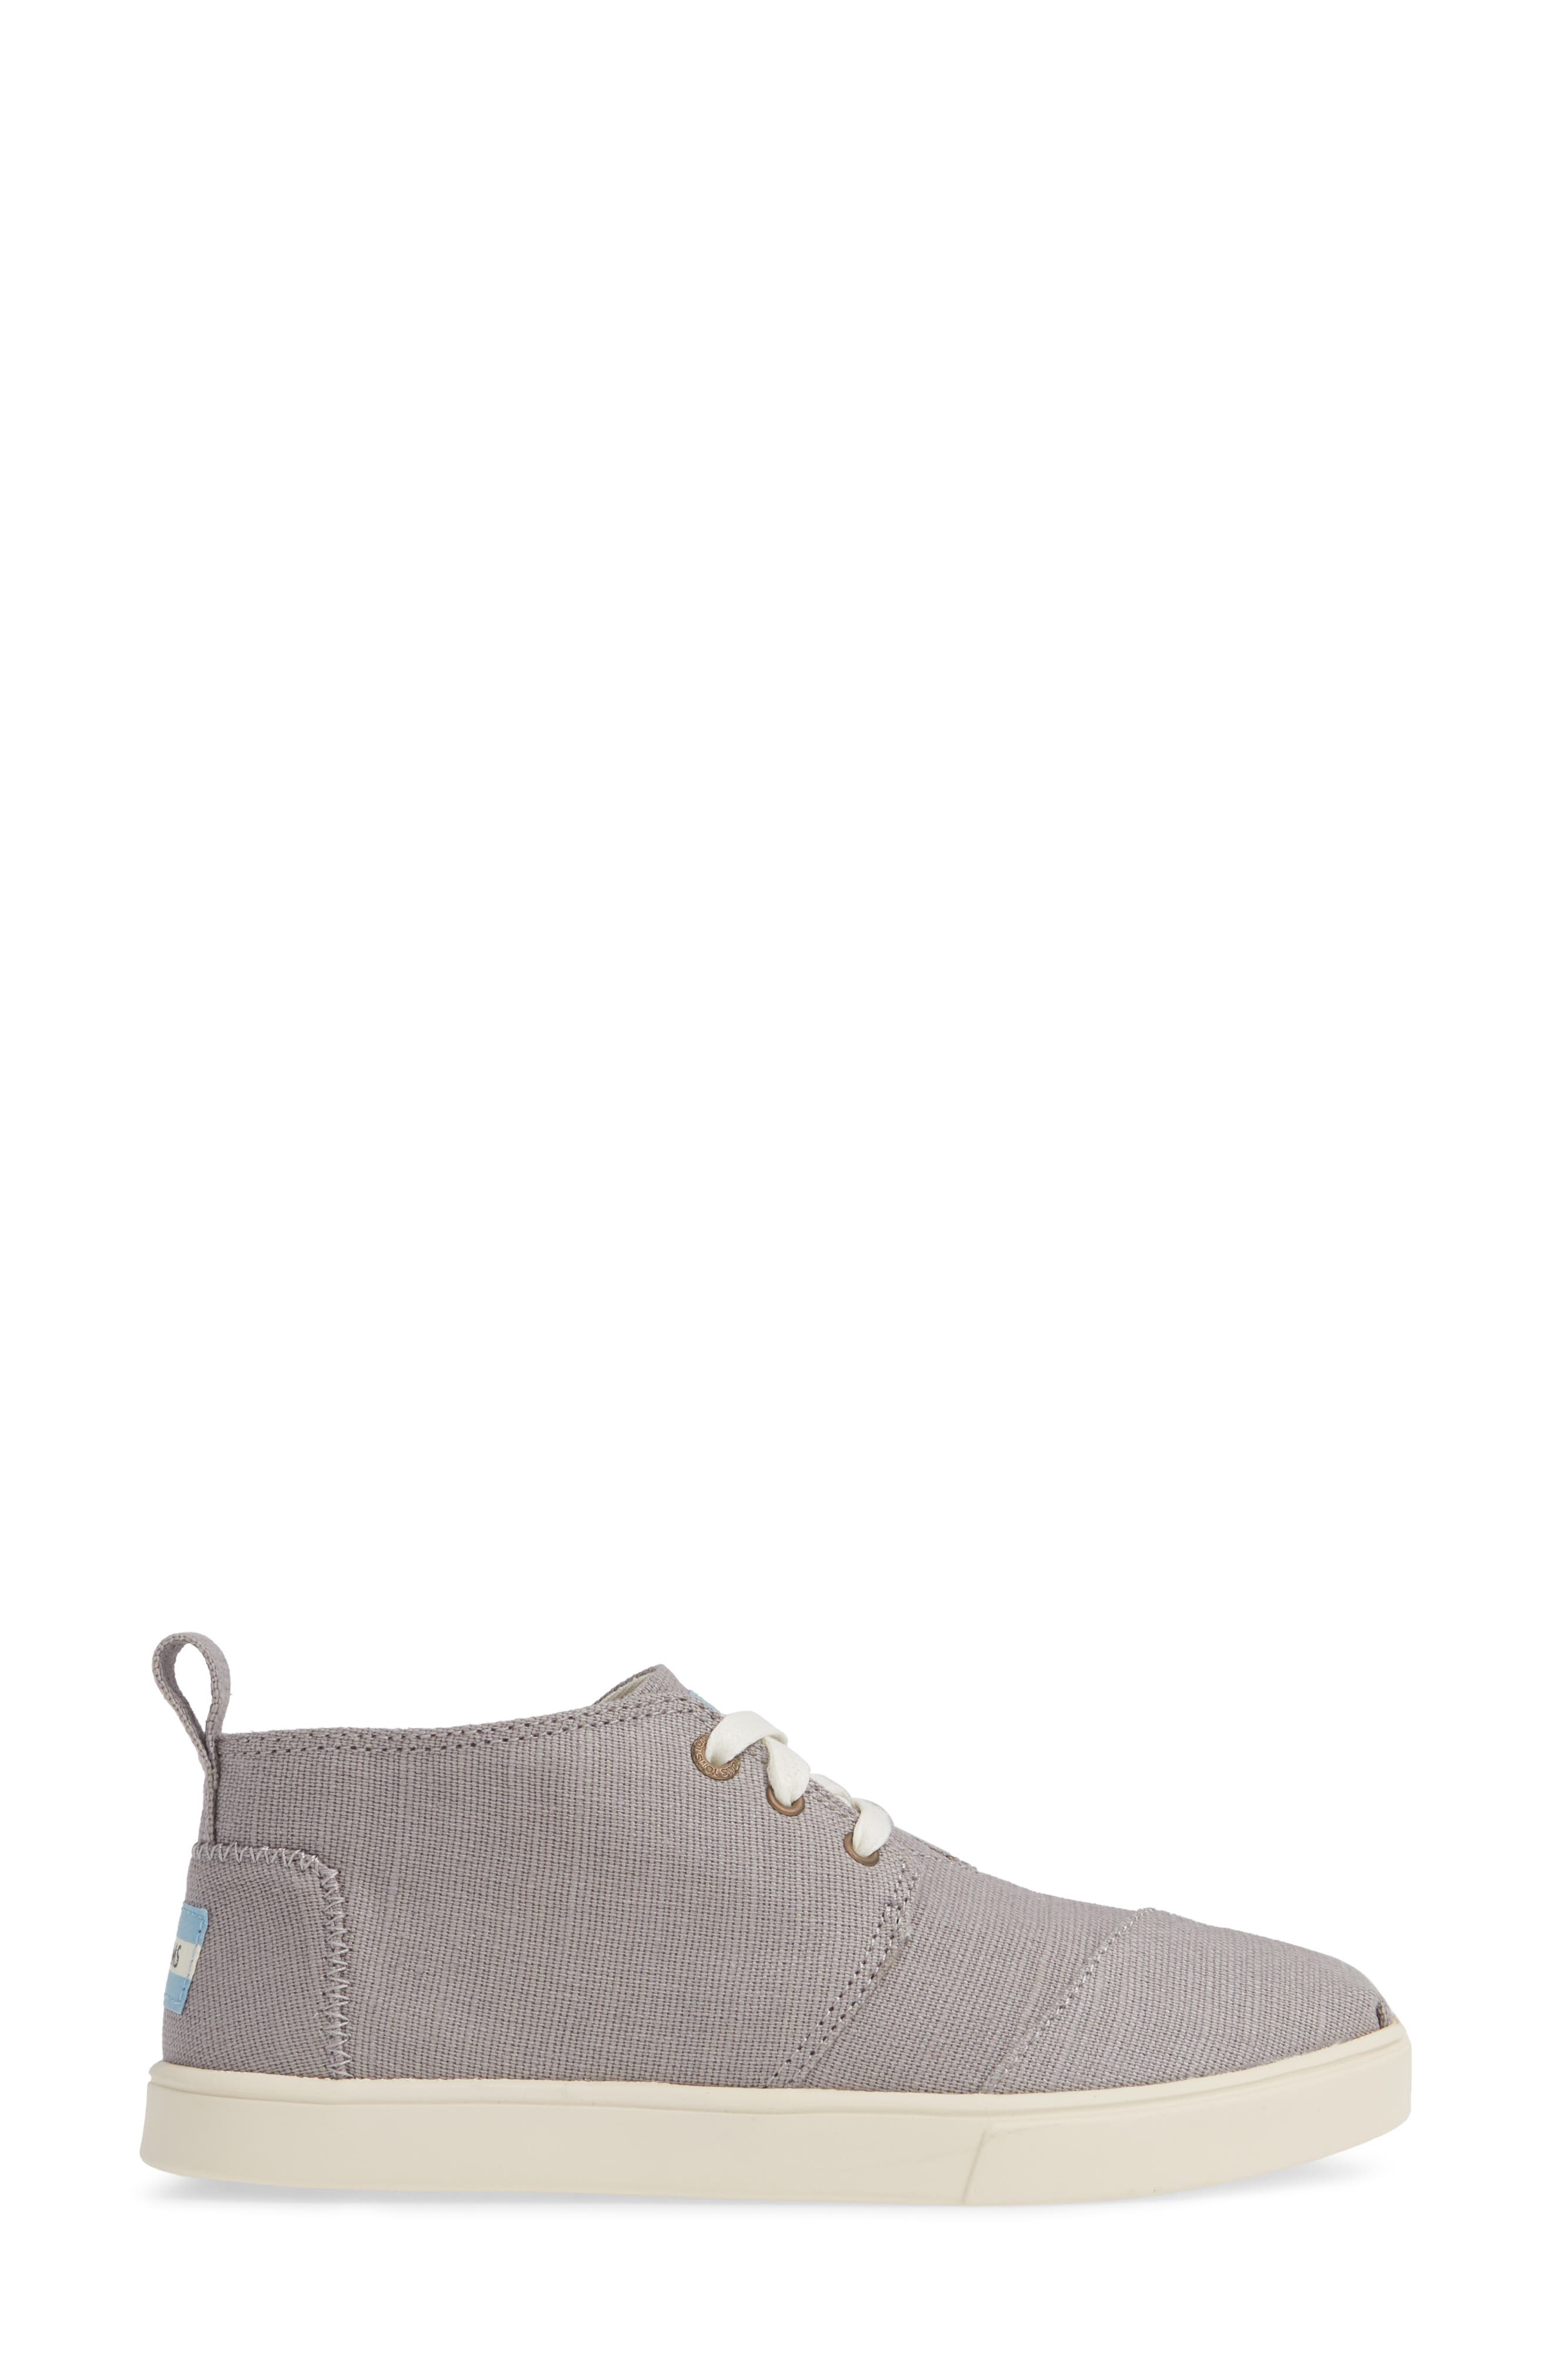 TOMS,                             Bota Bootie,                             Alternate thumbnail 3, color,                             MORNING DOVE HERITAGE CANVAS